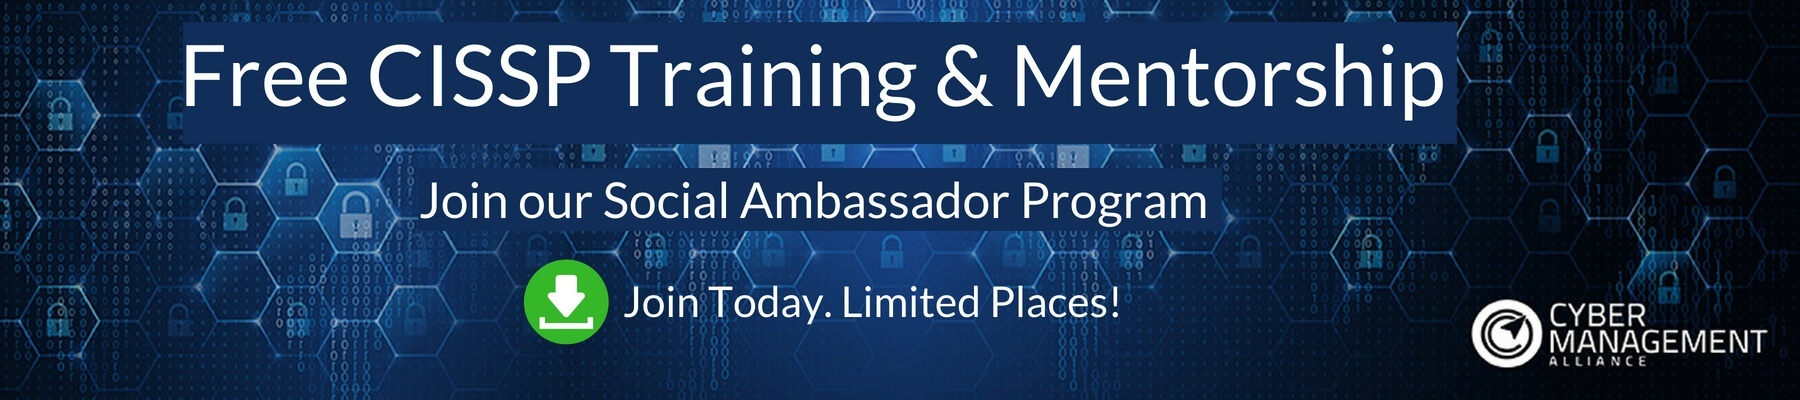 Free CISSP Training